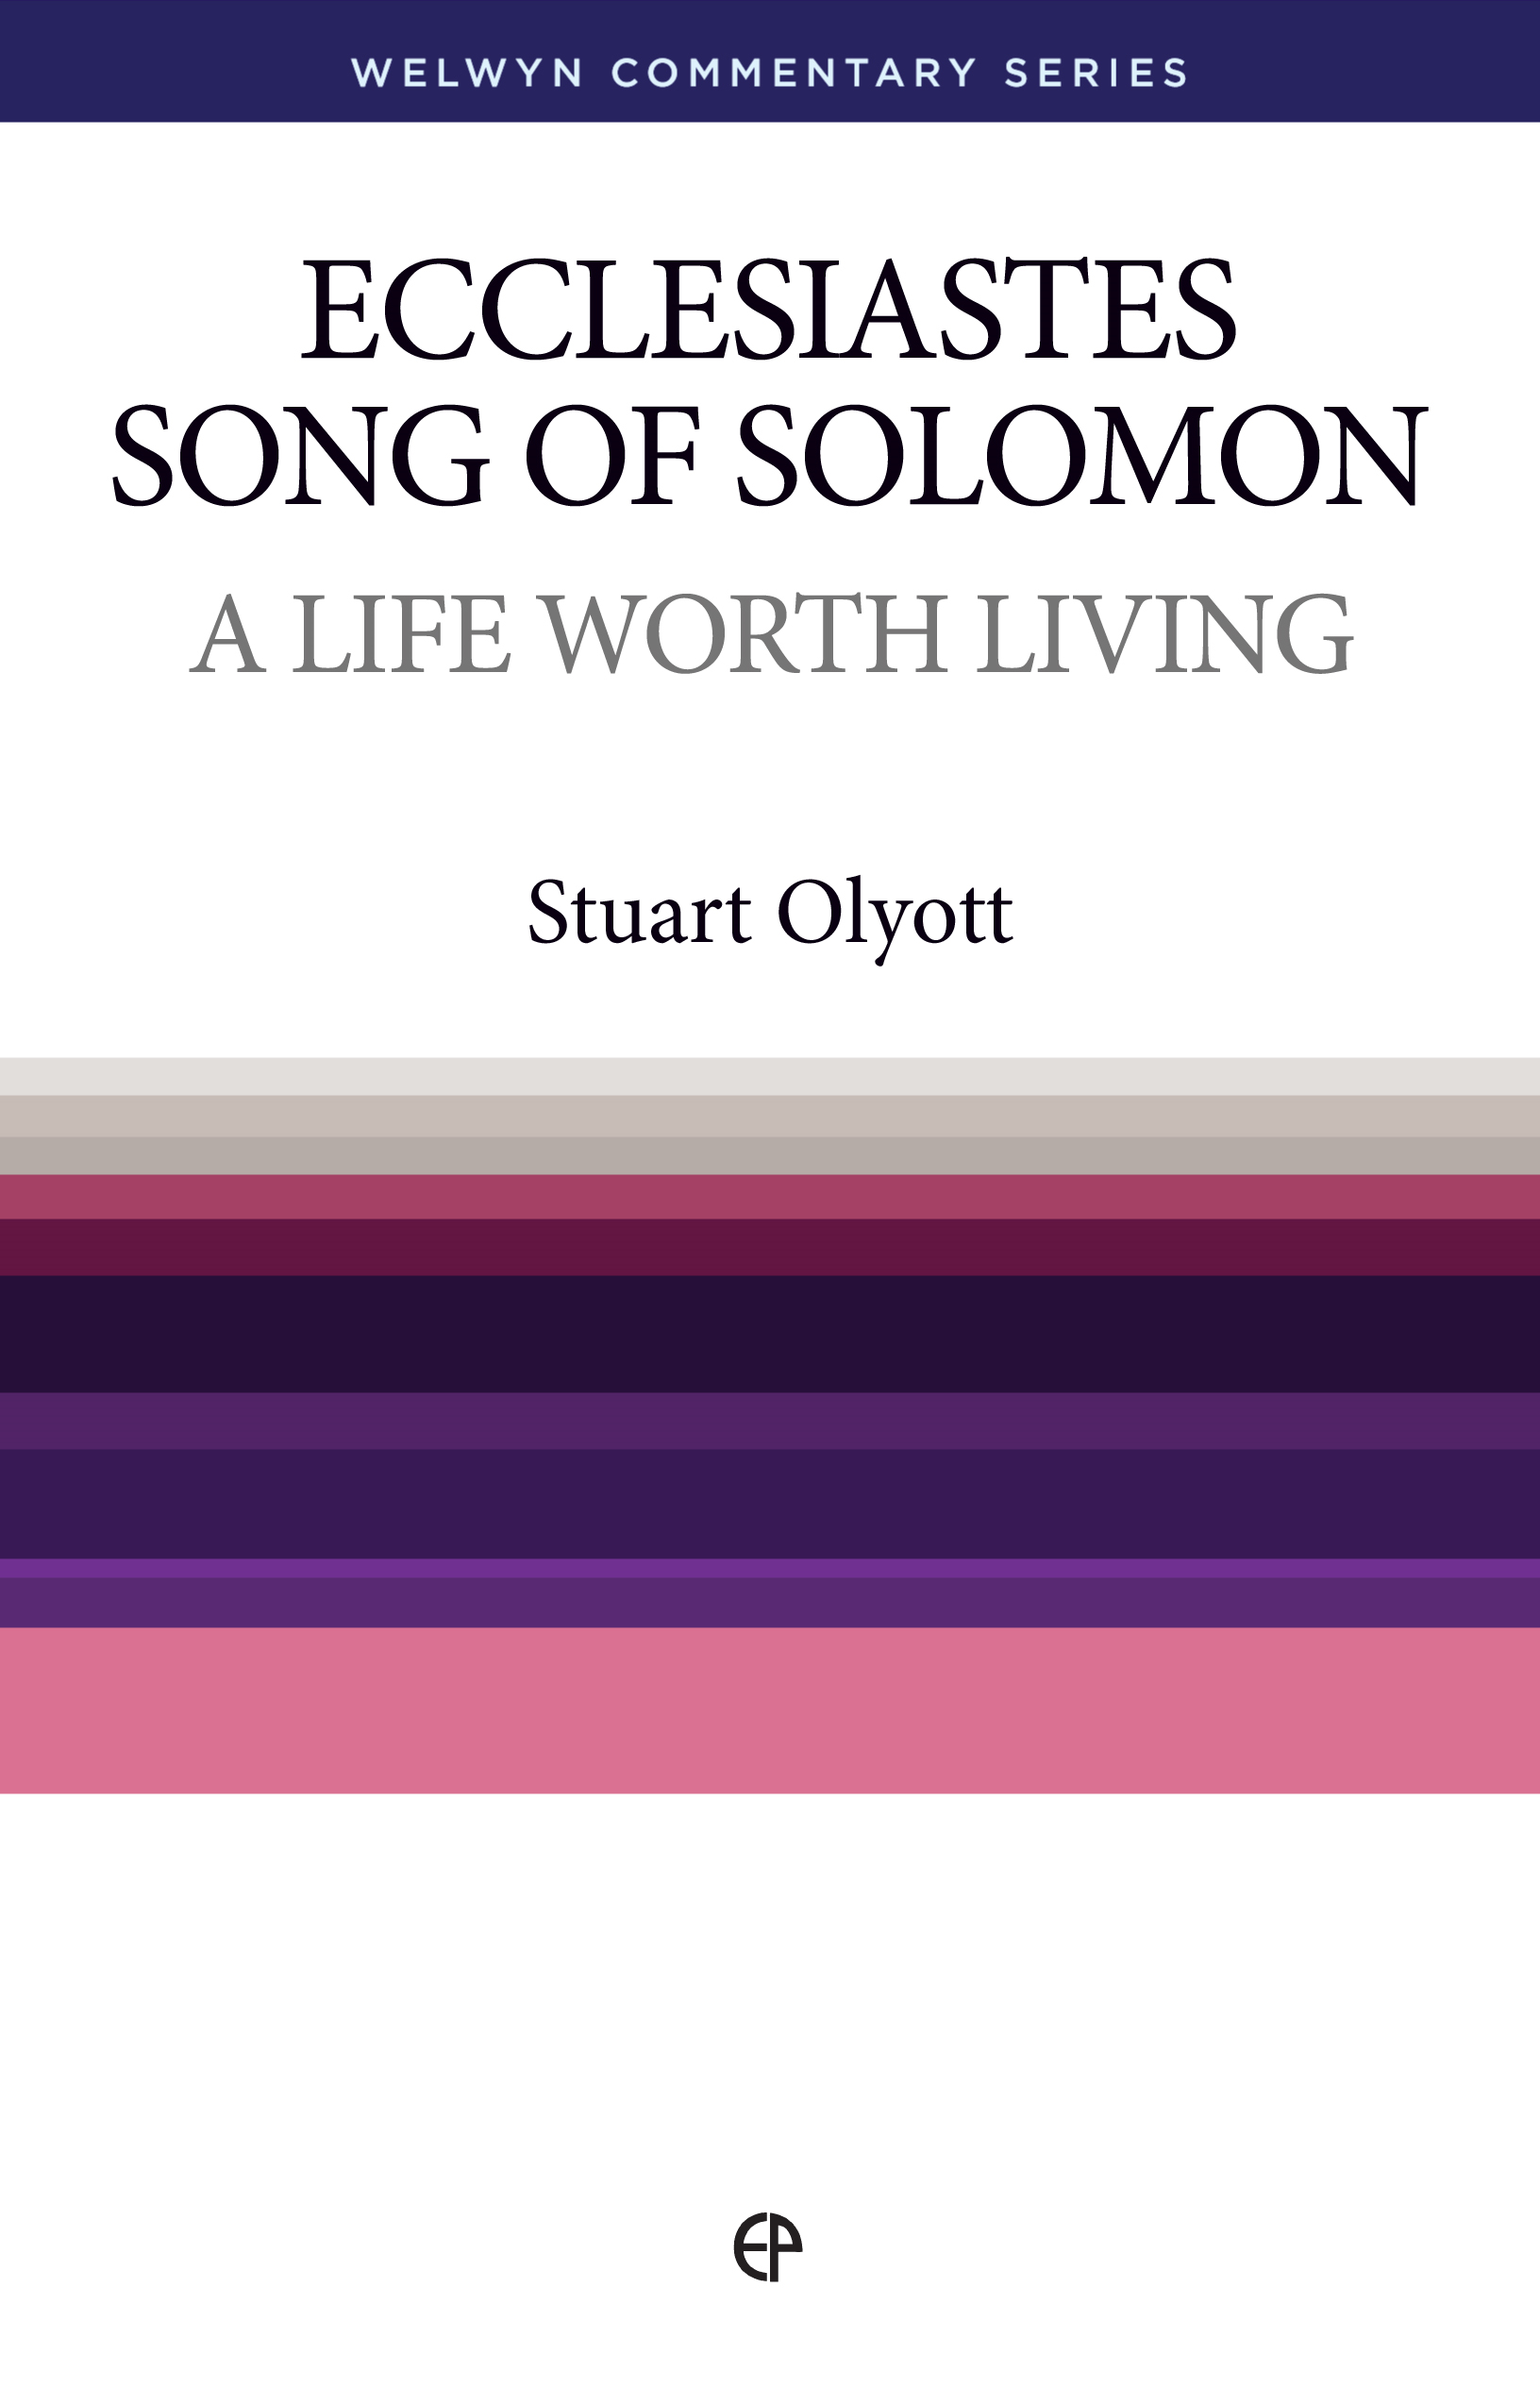 A Life Worth Living: Ecclesiastes and Song of Solomon